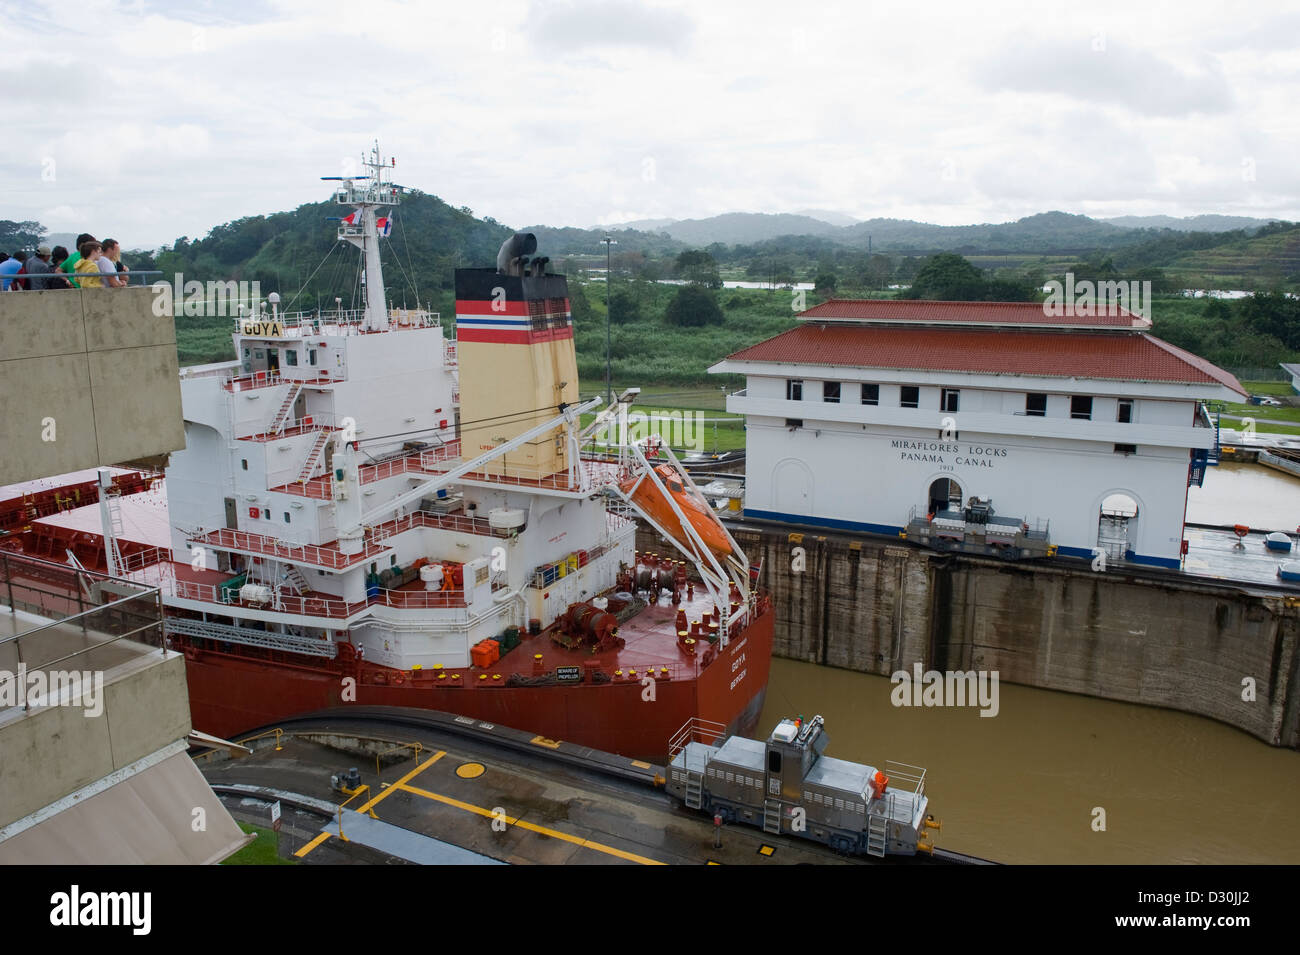 Miraflores Locks, Panama Canal, Panama City, Panama, Central America - Stock Image